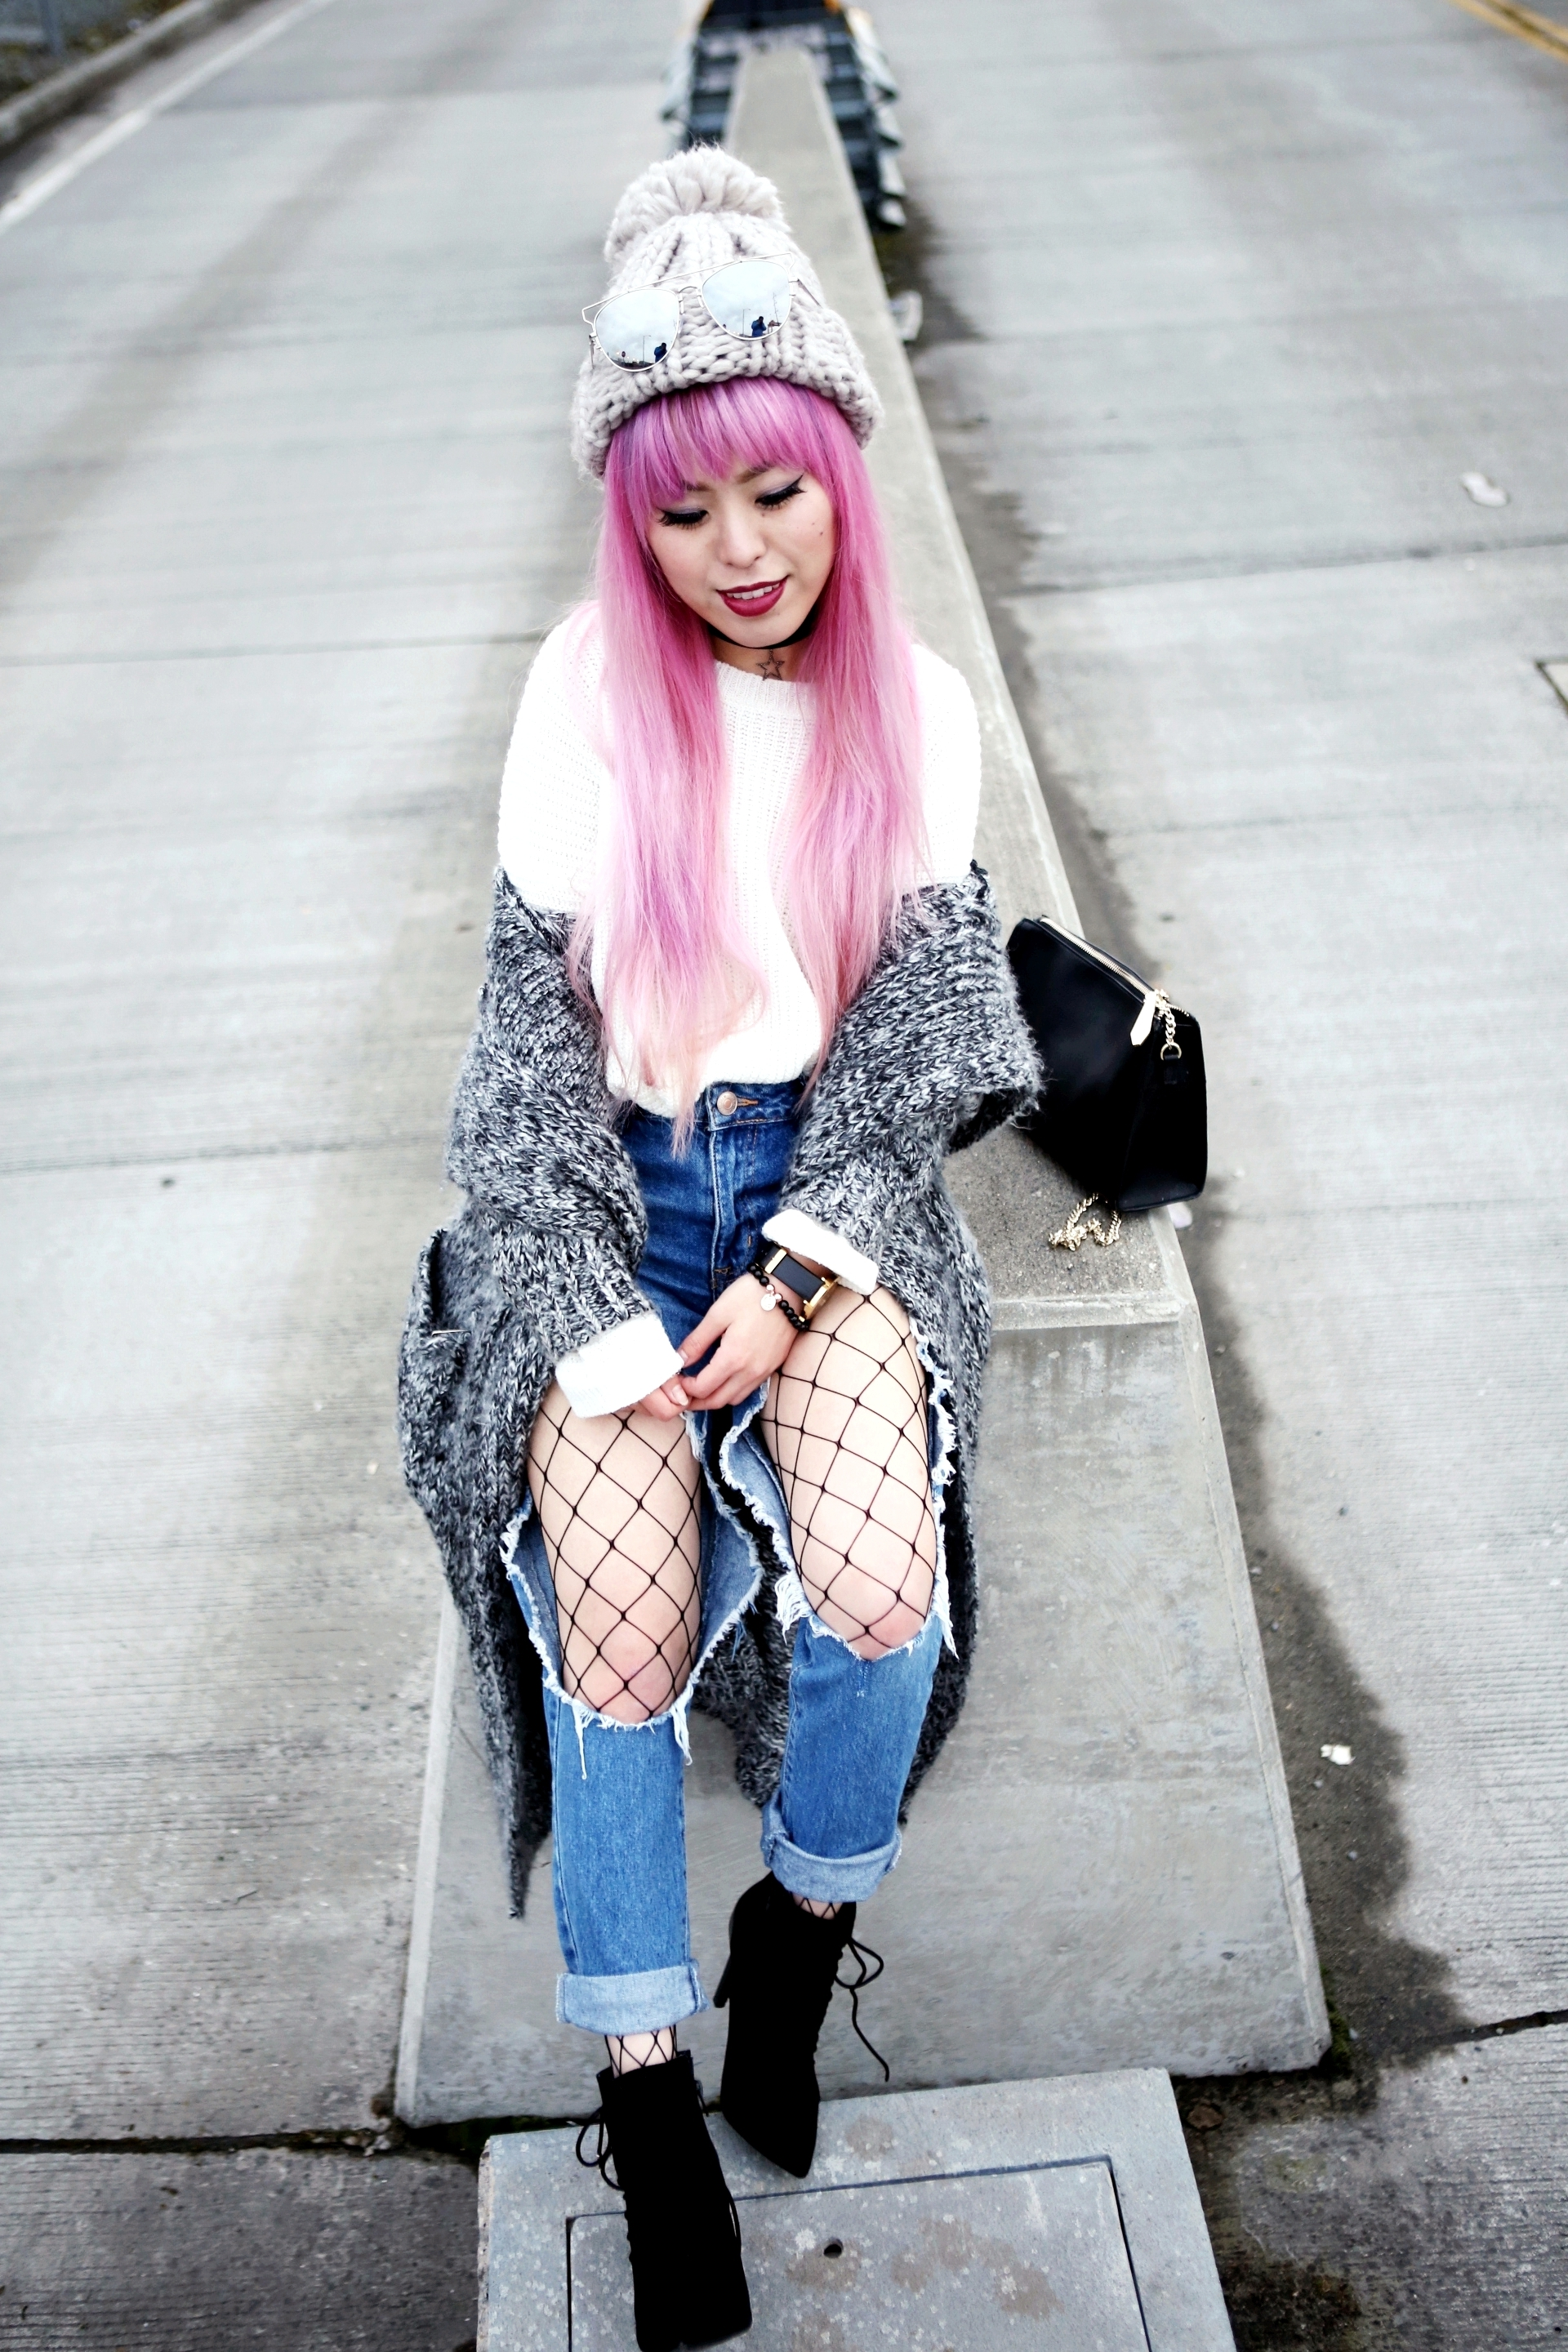 Asos Pom Pom Chunky Beanie_Forever 21 Sweater & Distressed Boyfriend Jeans_ASOS Fishnet Tights_Zara Star Velvet Chocker & Black Lace Up Boots_Gray Chunky Long Cardigan_Free People Mirrored Sunglasses_Pink Hair_Seattle Fashion Style Blogger_Japanese 2